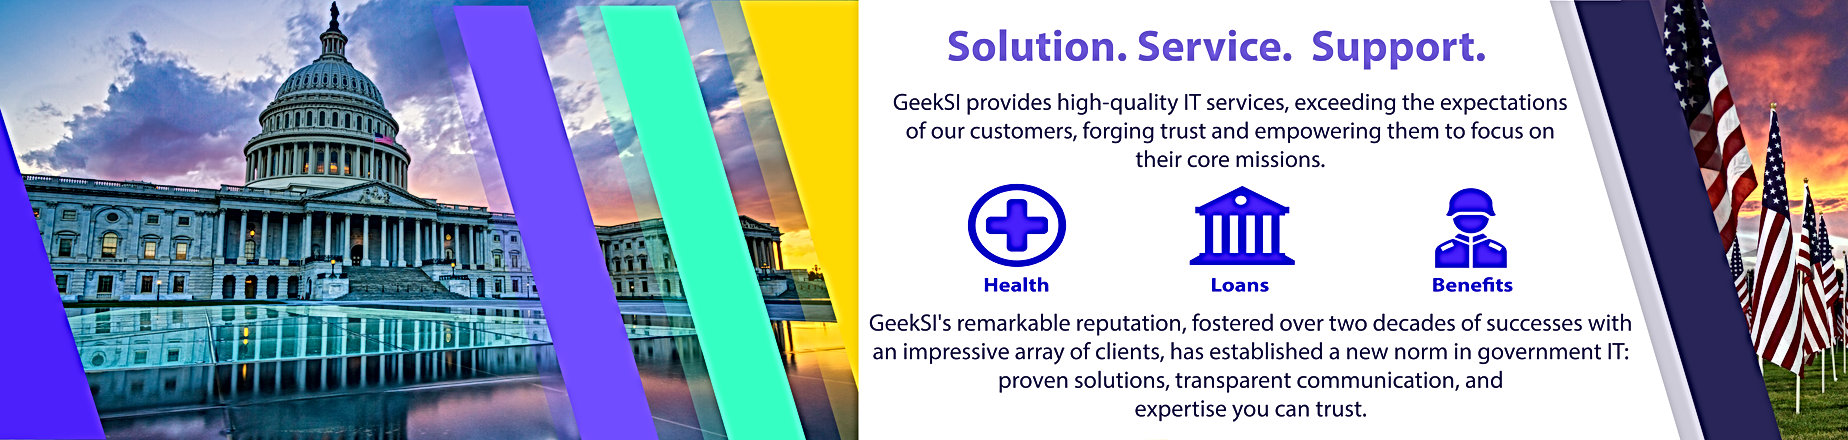 Geek Main Banner slim-01.jpg